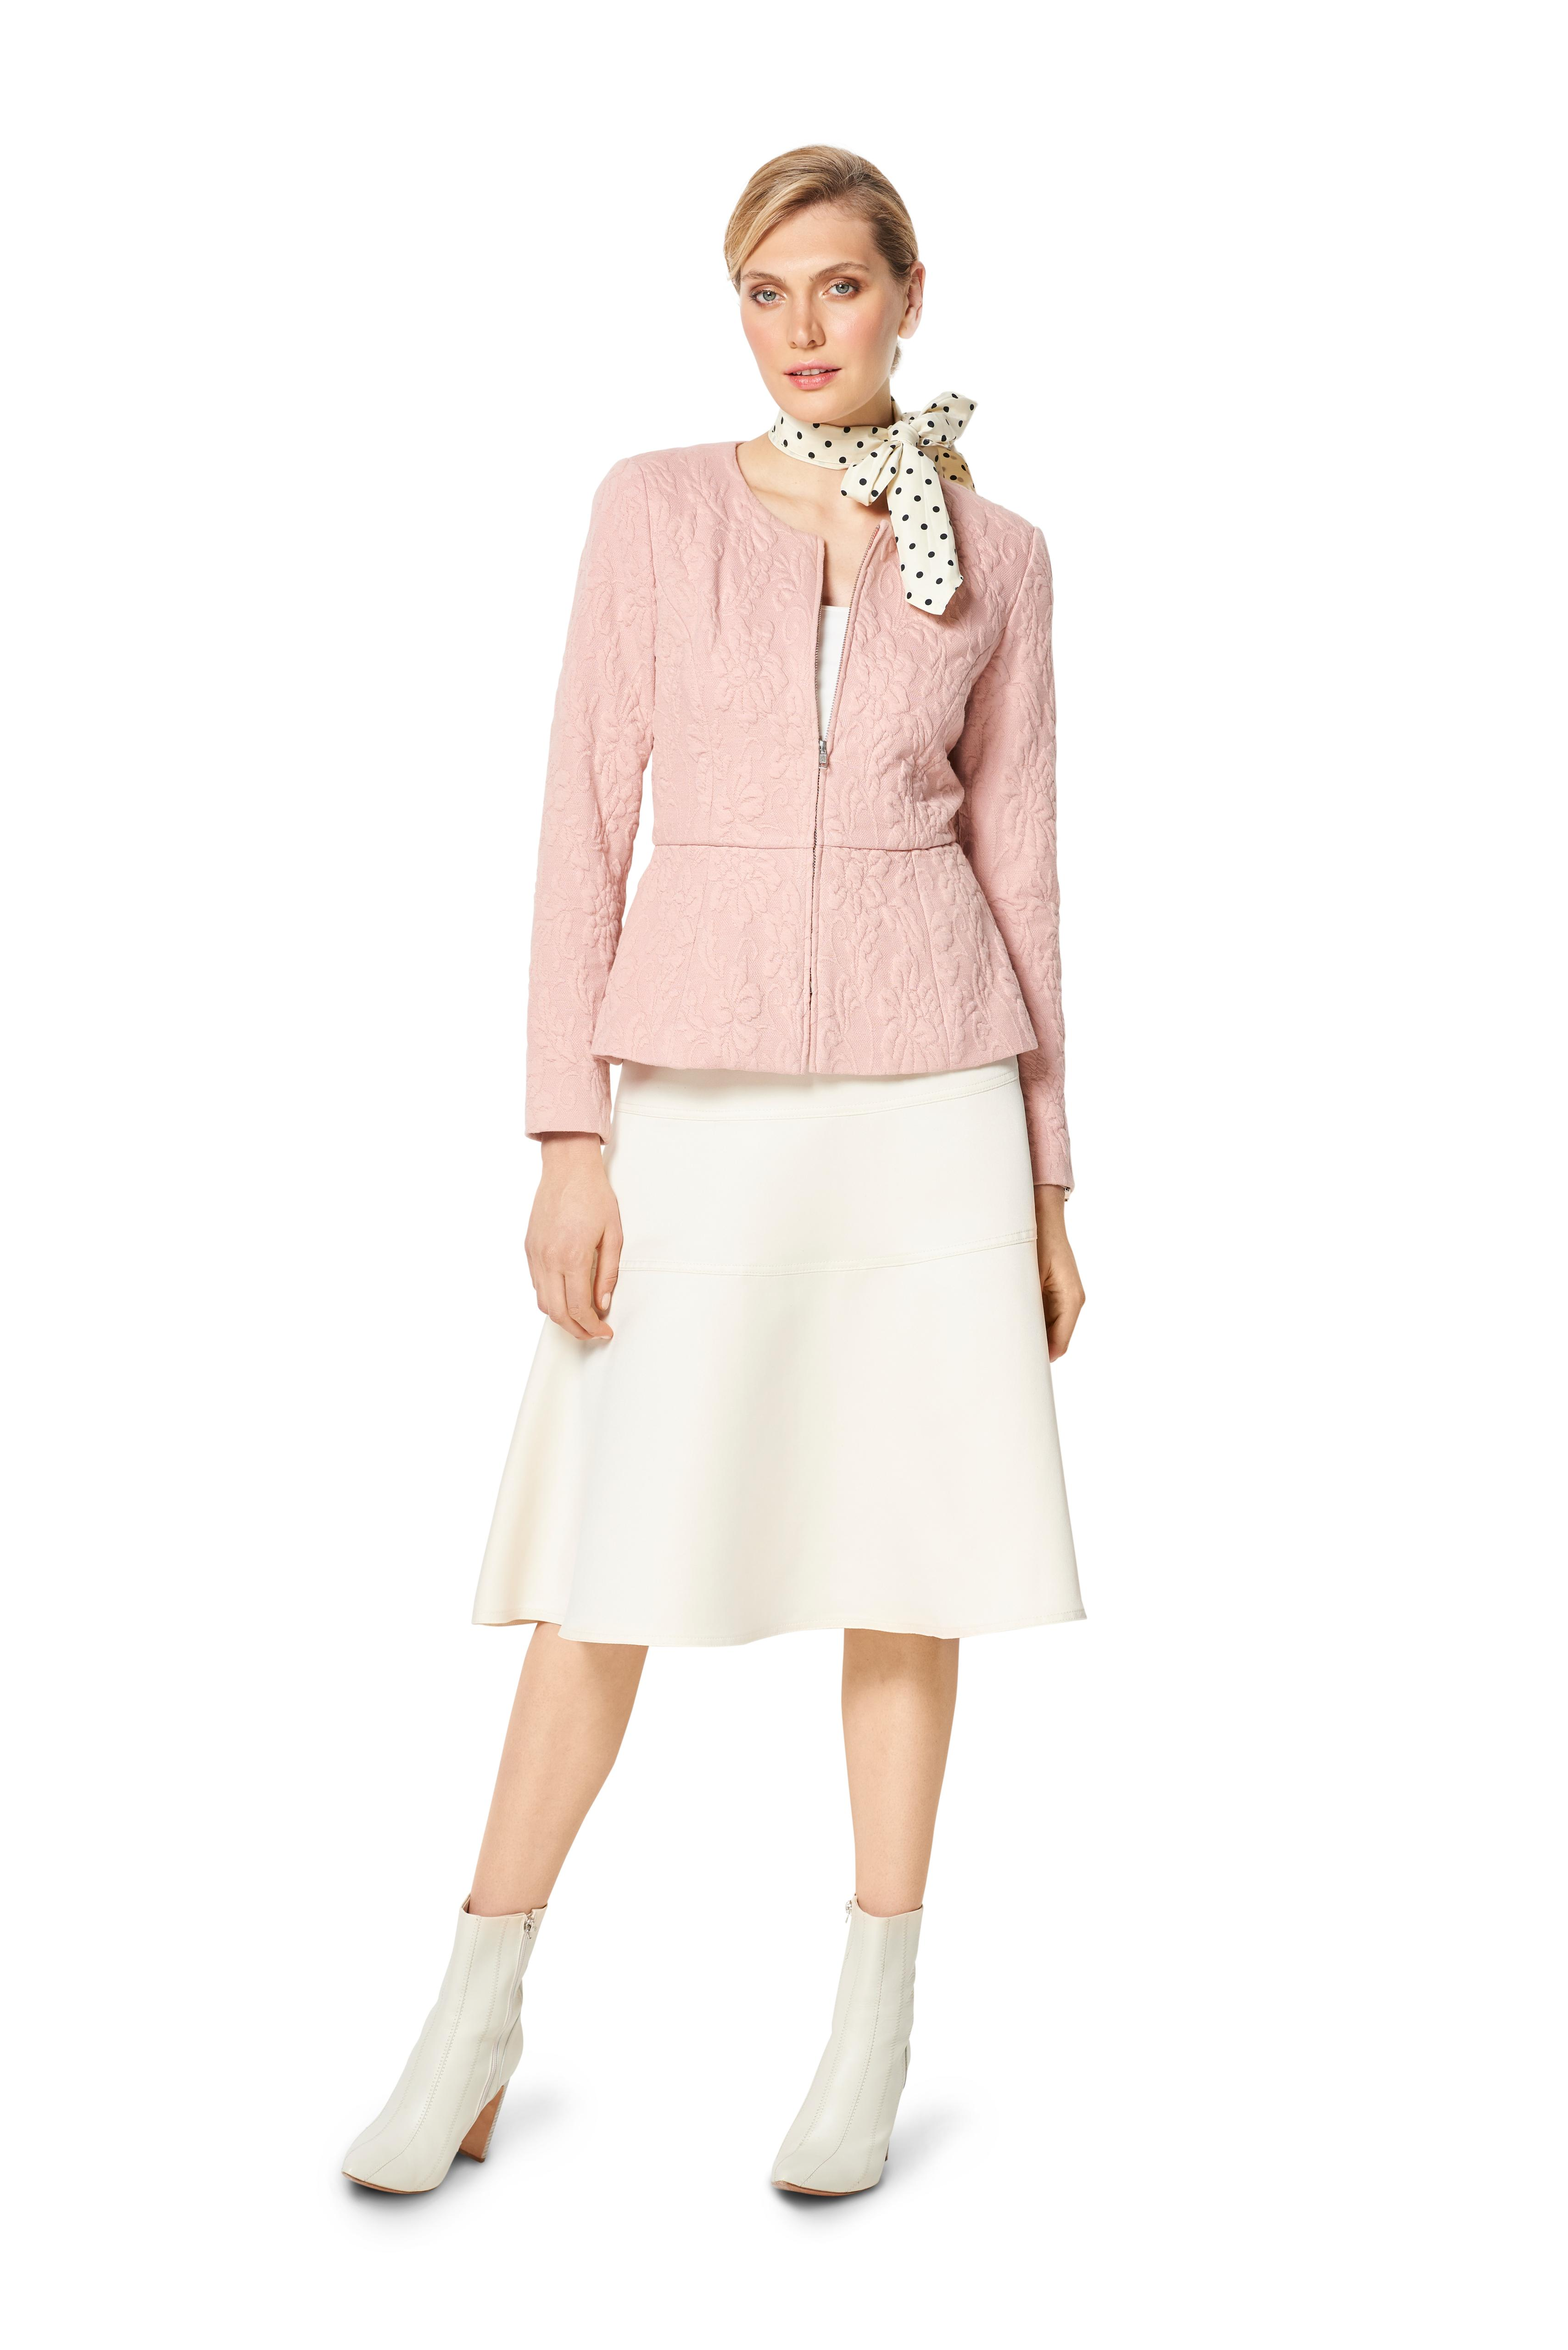 Burda 6334- Misses' peplum jacket